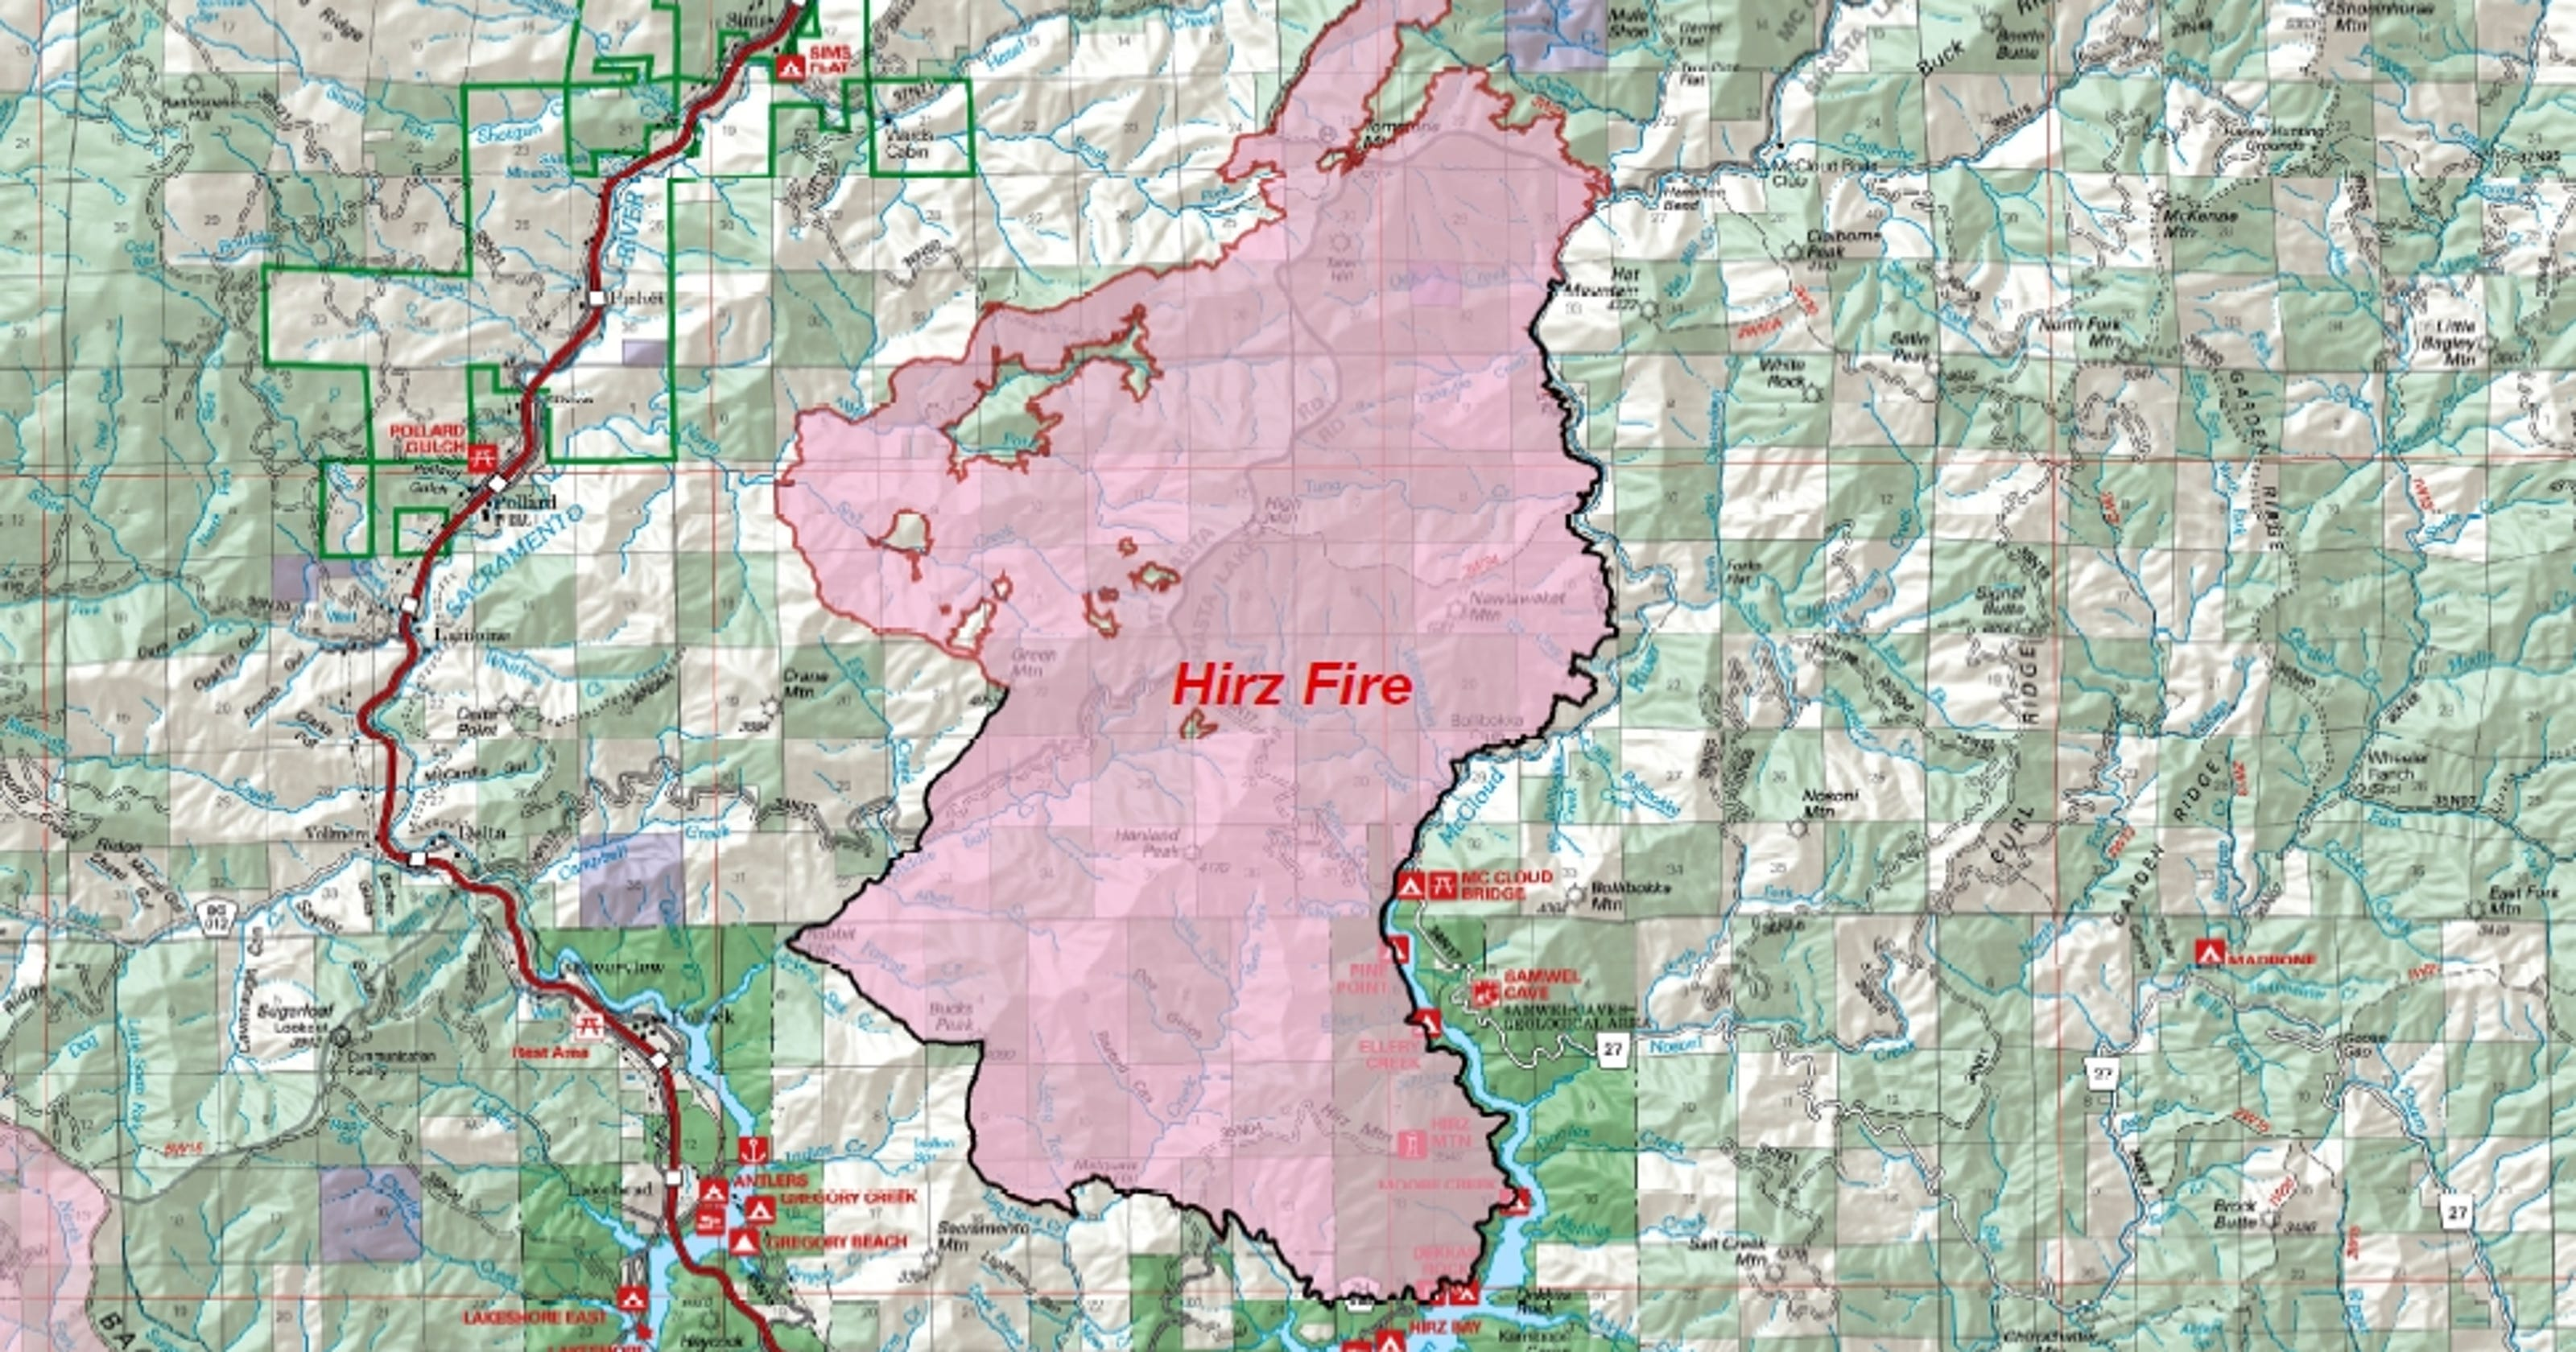 Hirz Fire near Lake Shasta burns nearly 4,000 acres in a day